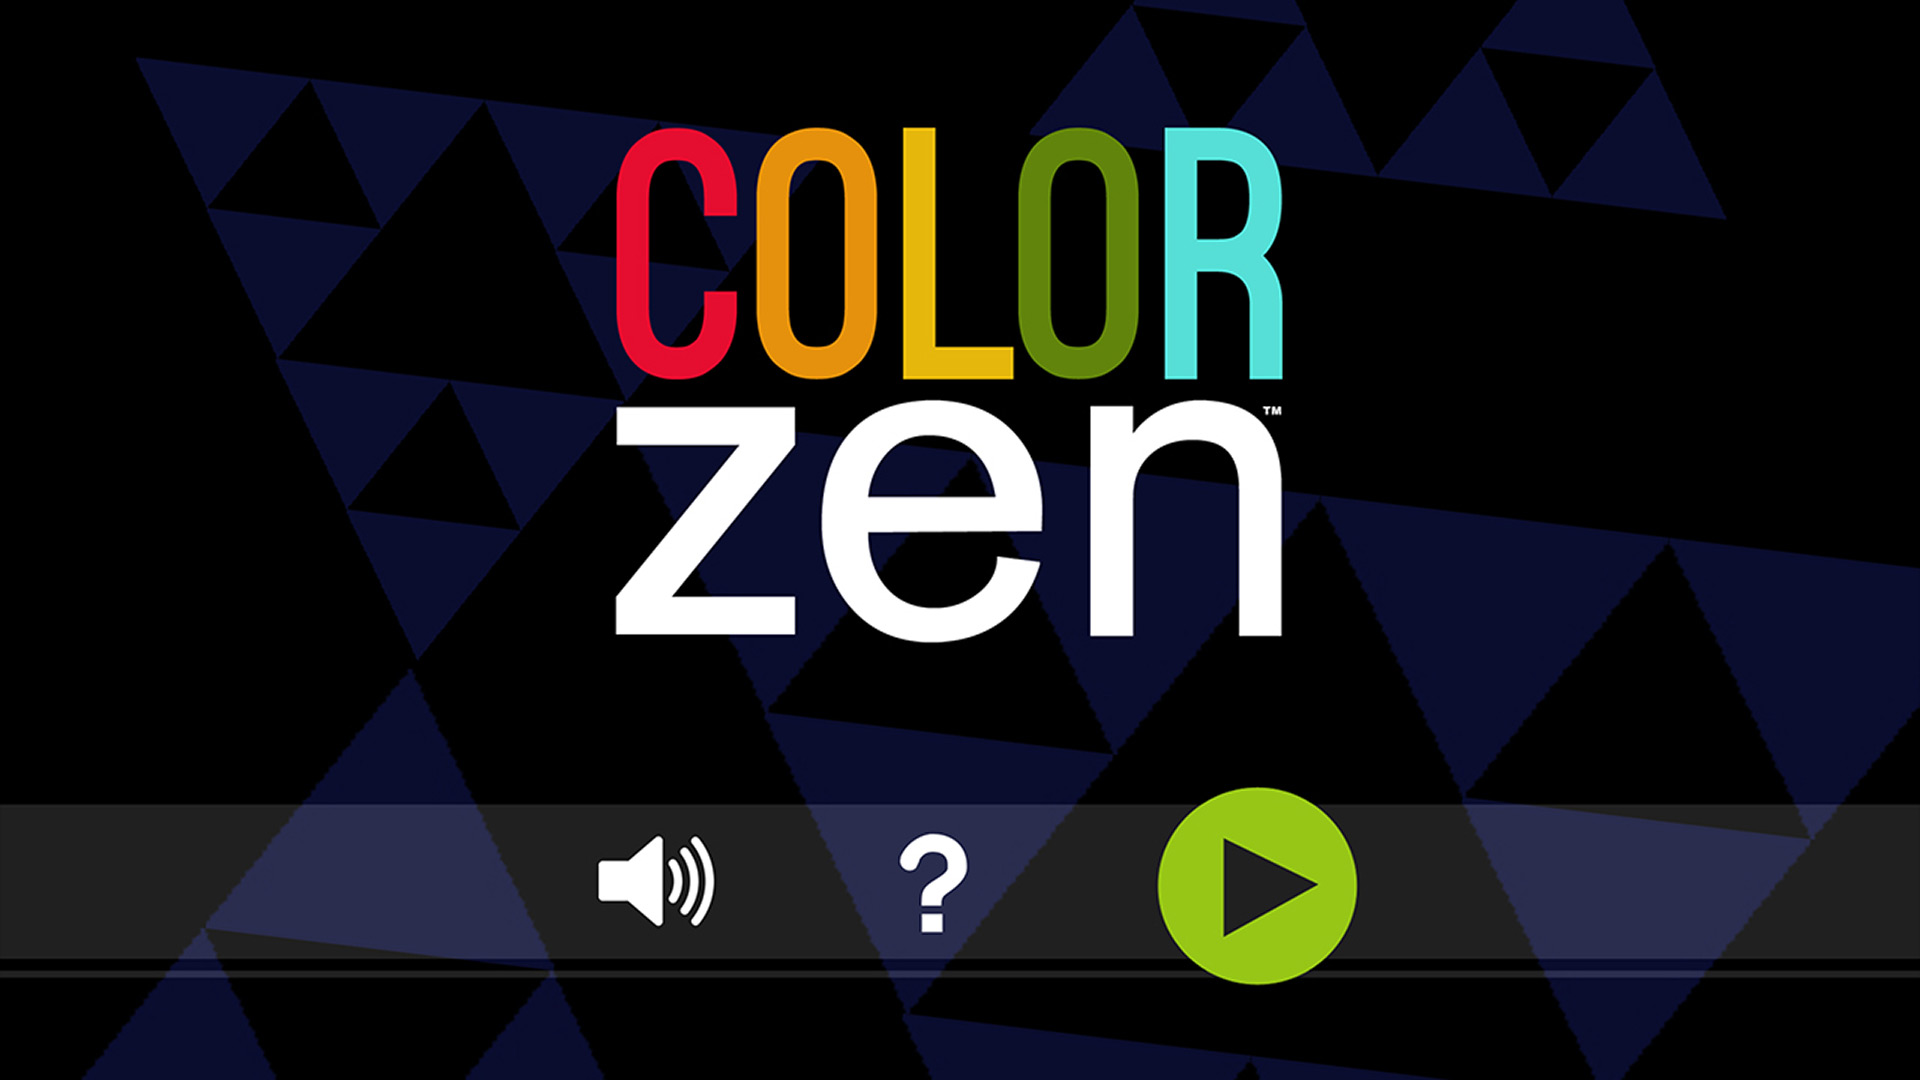 Color zen music - Description Color Zen